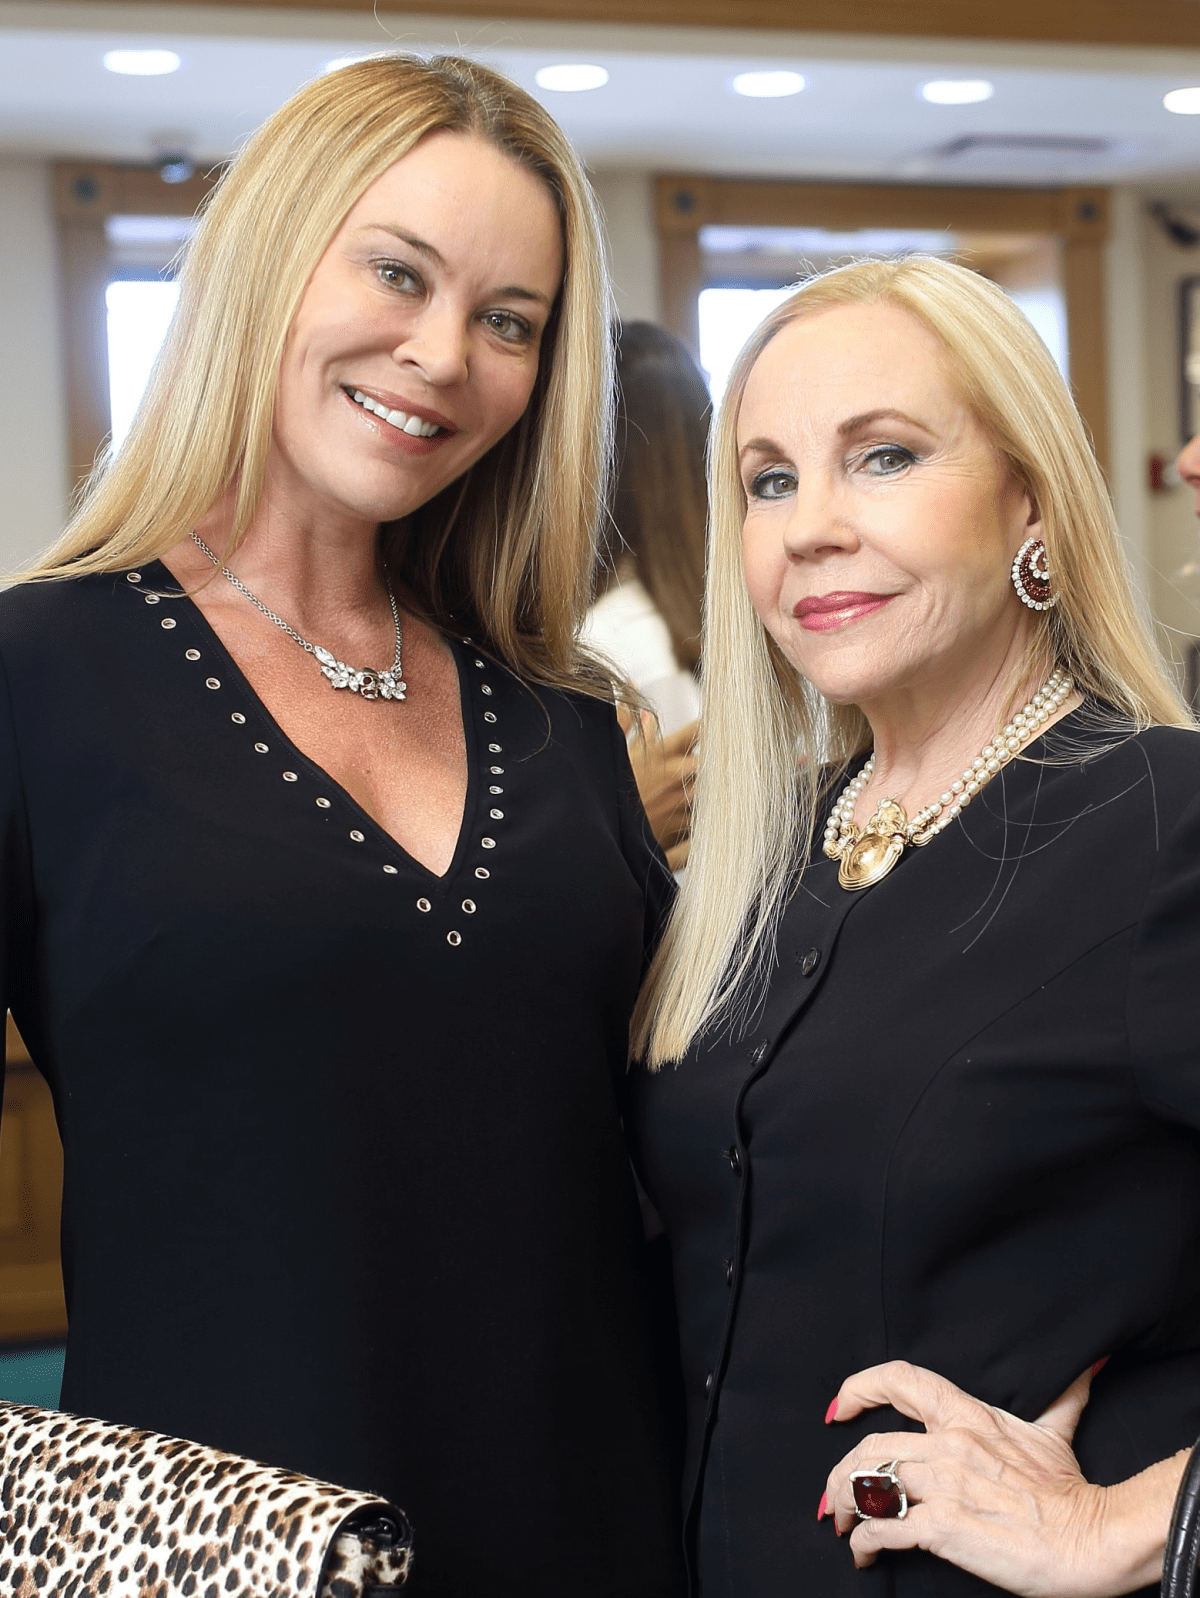 Houston, Una Notte kickoff party, October 2015, Megan Sutton Reed, Carolyn Farb